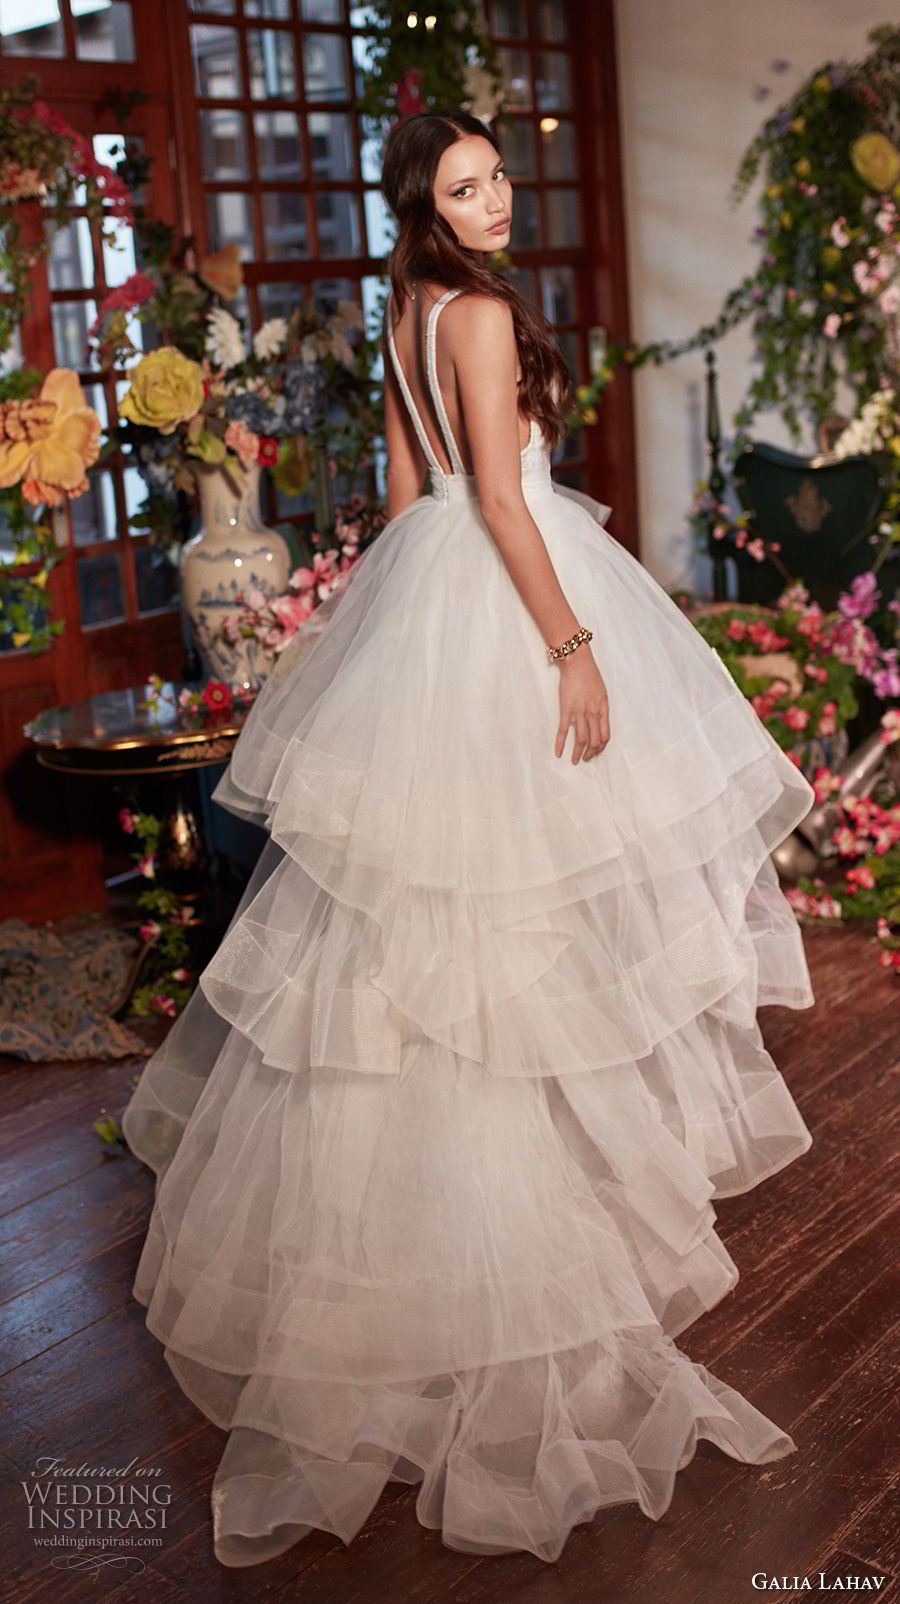 galia lahav couture fall 2018 bridal sleeveless deep v neck heavily embellished bodice tulle layered skirt sexy romantic a line wedding dress open back medium train (8) bv